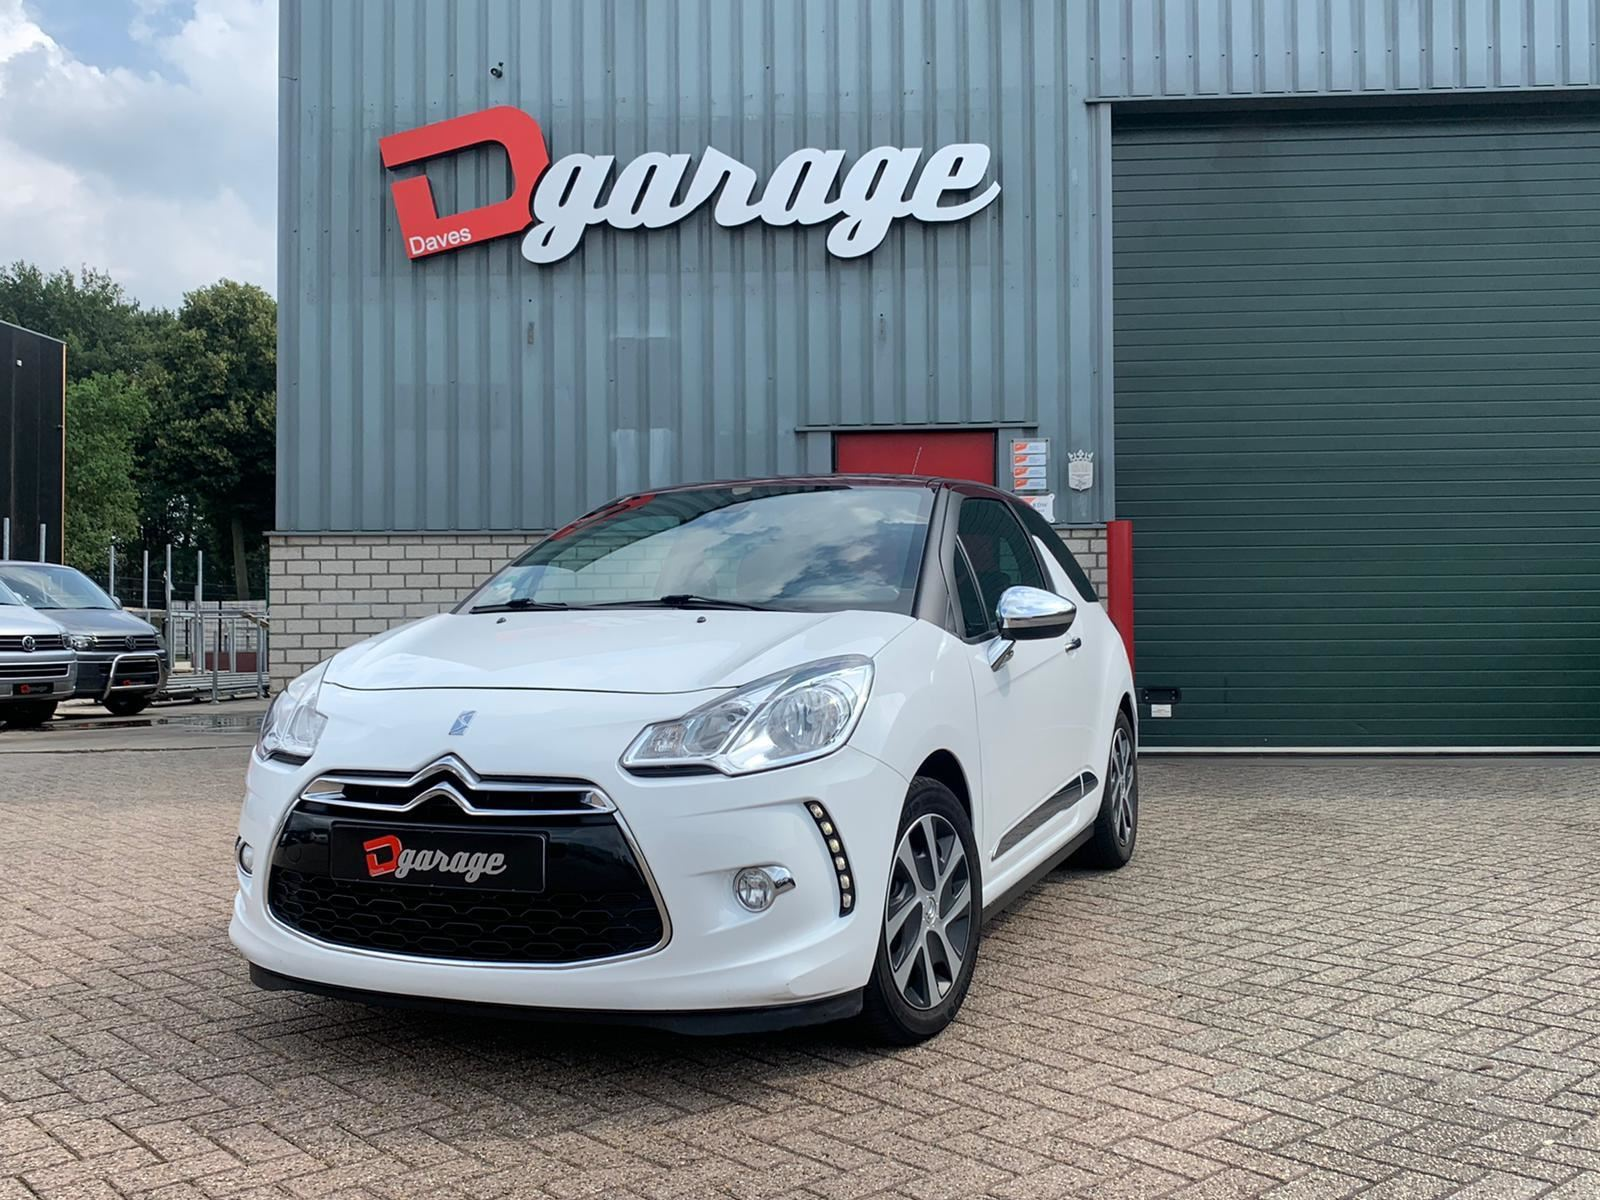 Citroen DS3 occasion - Dave's Garage